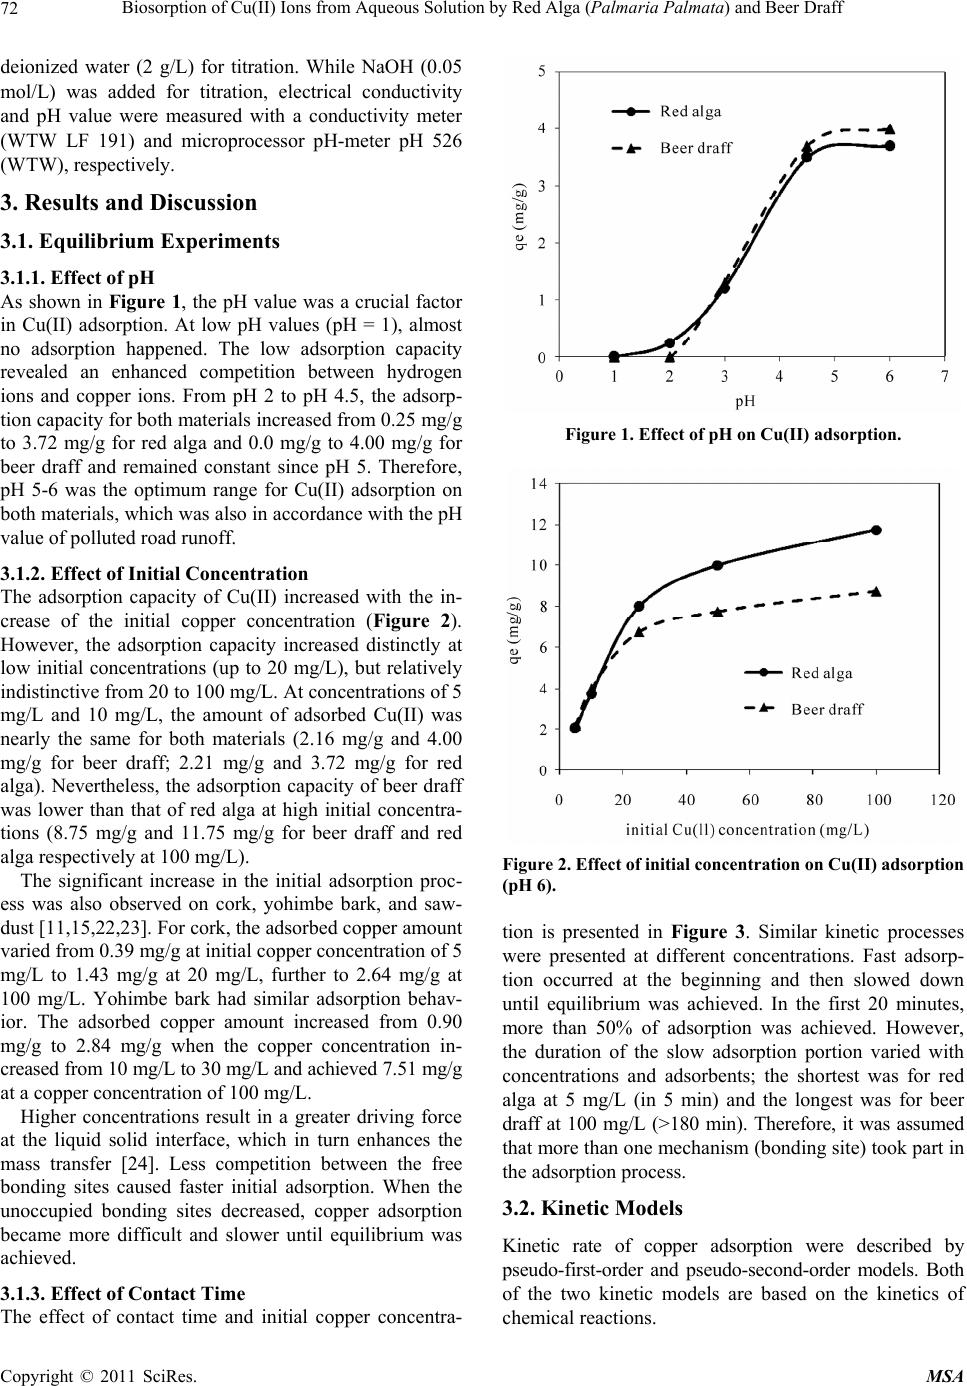 Biosorption of cuii ions from aqueous solution by red alga i biosorption of cuii ions from aqueous solution by red alga ipalmaria palmatai and beer draff thecheapjerseys Gallery